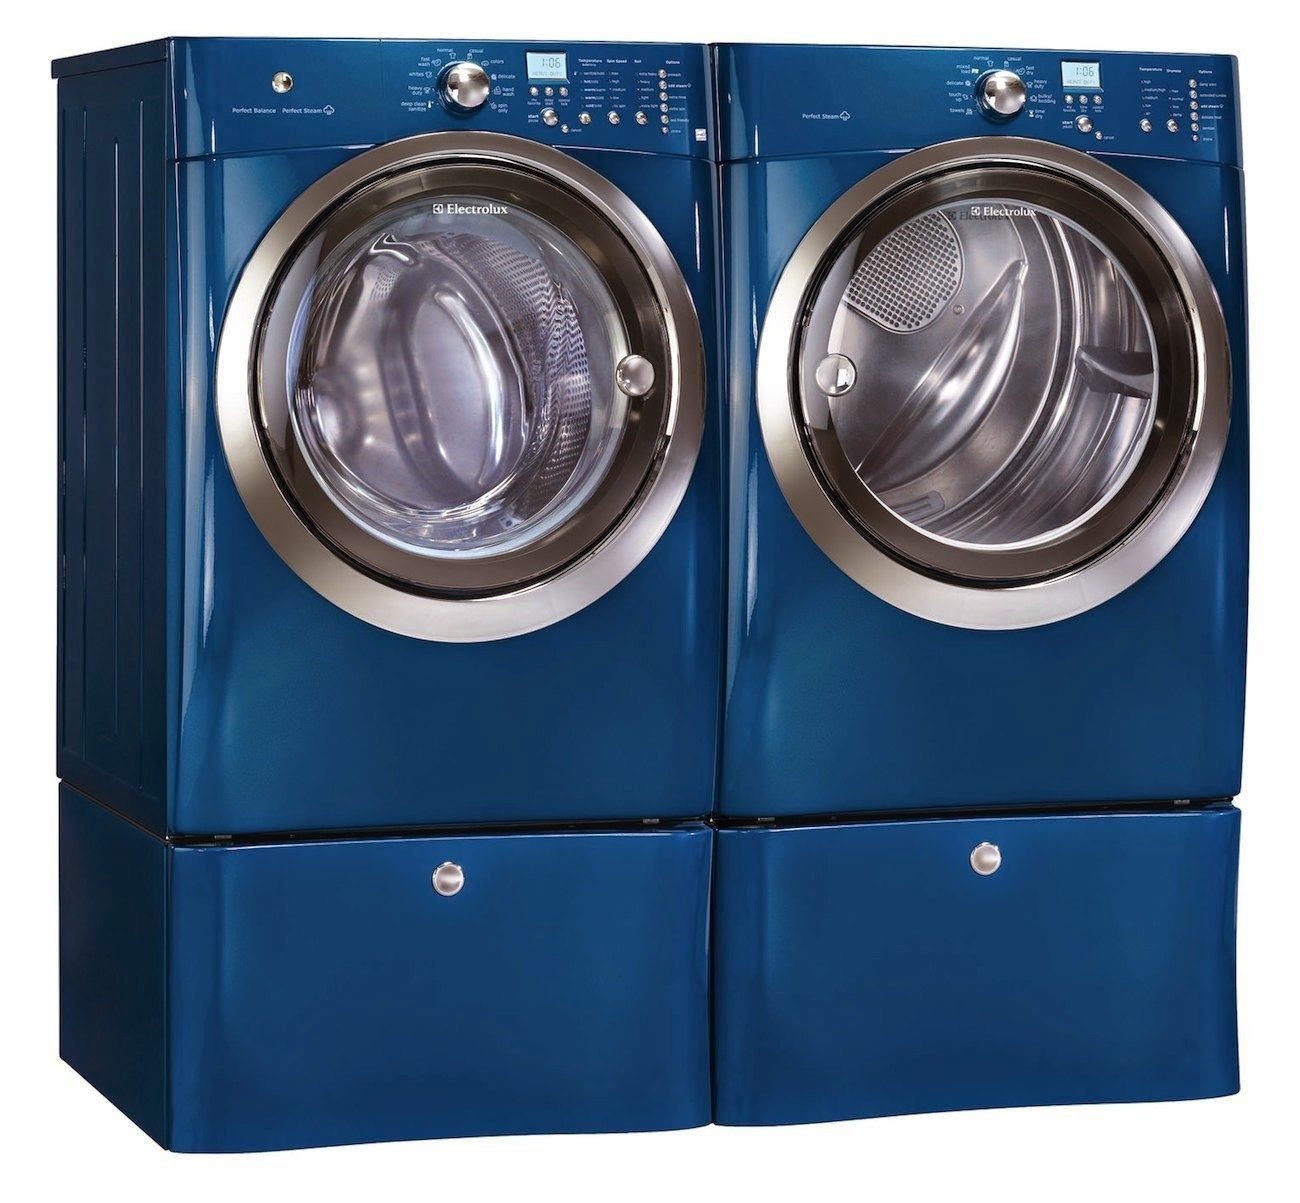 electrolux iq touch blue steam front load washer and dryer laundry set